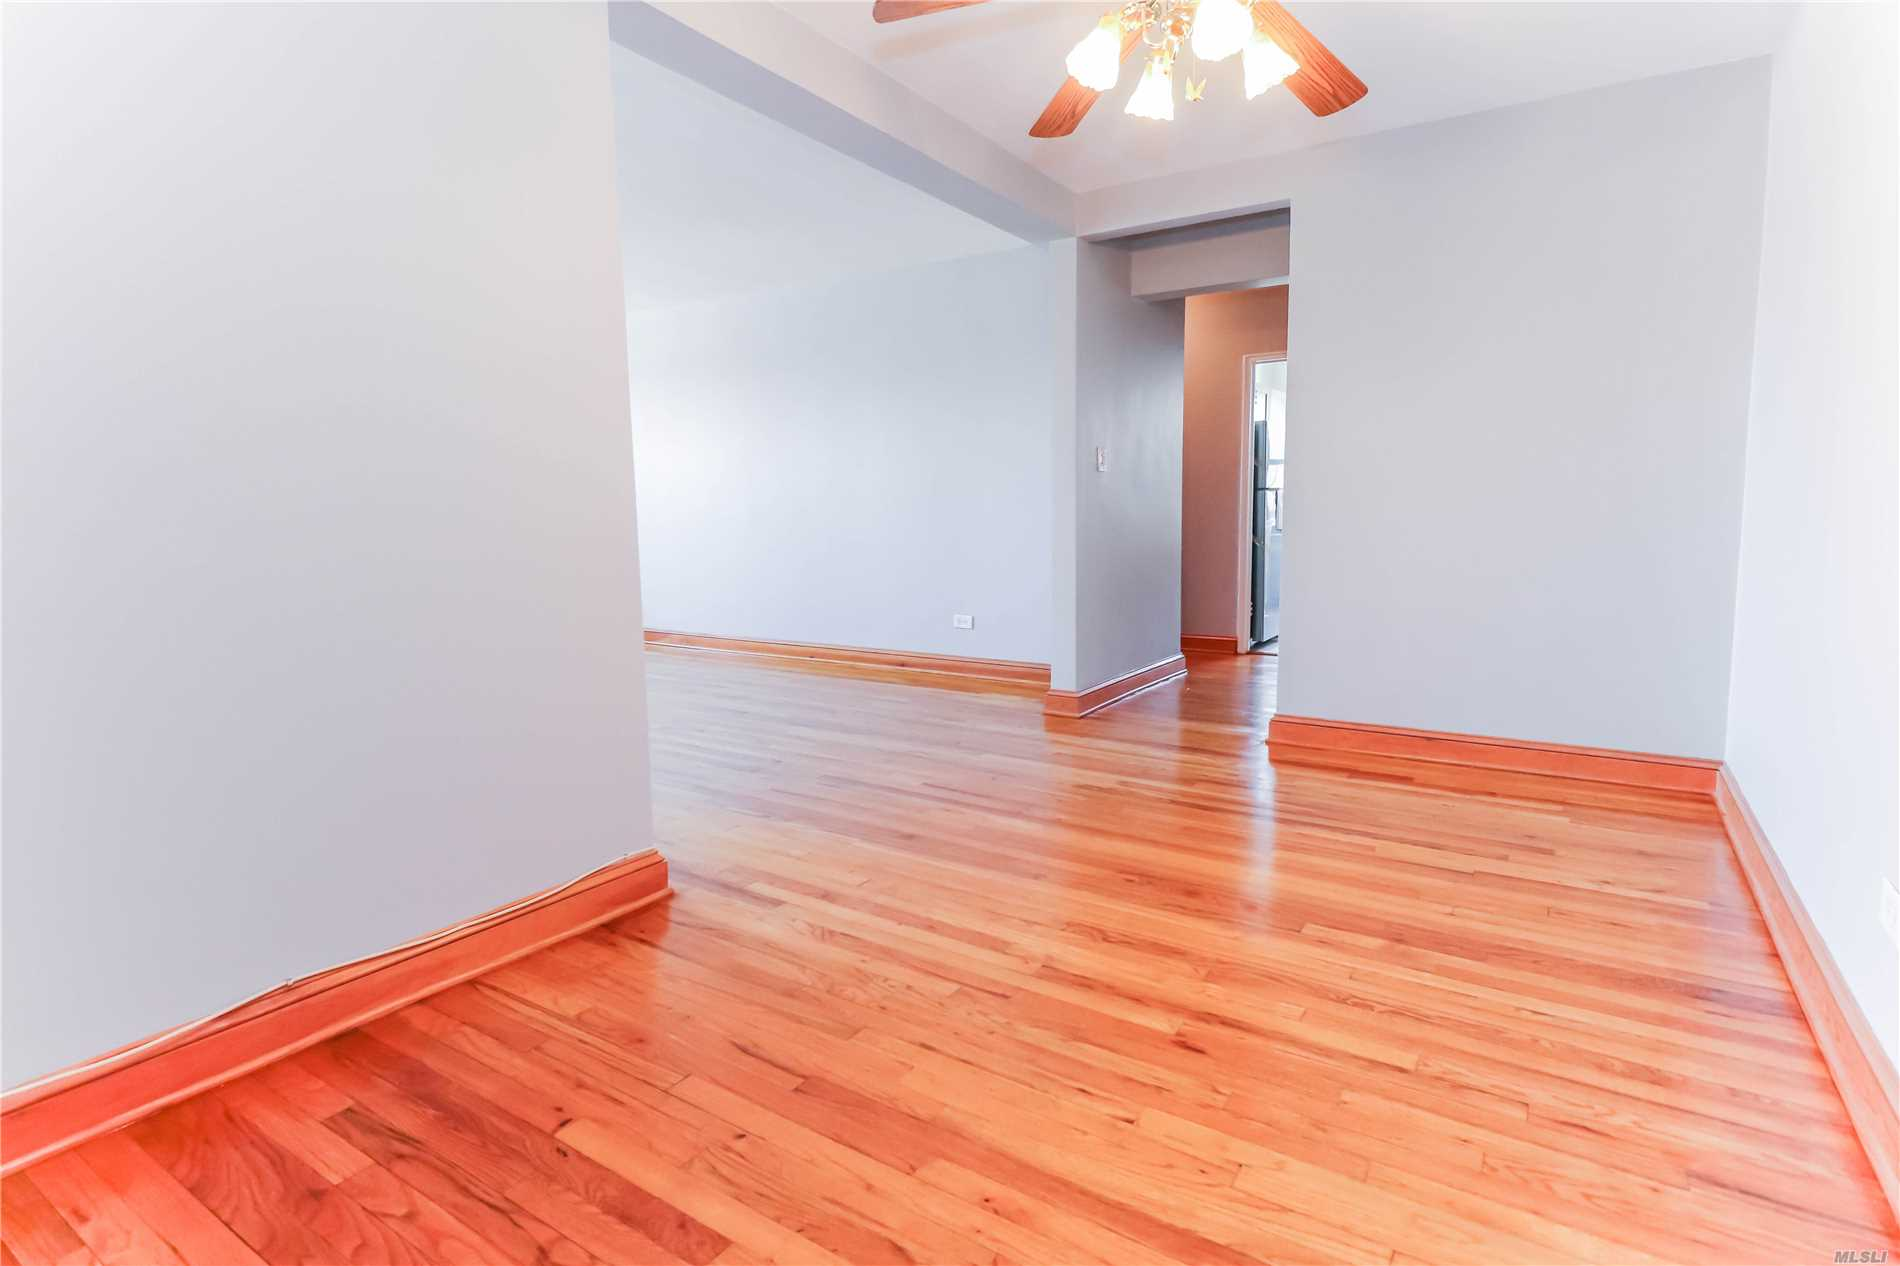 Large 1 Bedroom, For A Buyer Looking For Bright And Airy Unit Brand New Appliance, Newly Painted Benjamin Moore, Newly Stained And Polyurethane Floors, Bath Room and 3 Years Young, High and Bright Floor, Come before it too late.